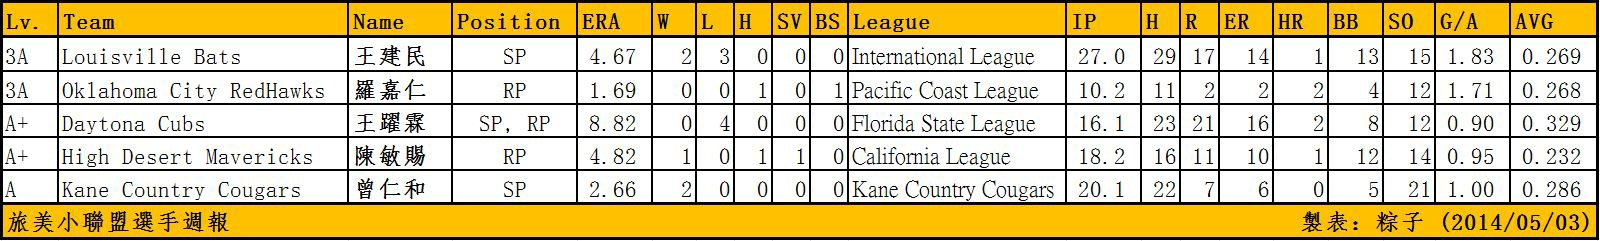 20140503 Taiwanese MiLB Pitchers Week Report